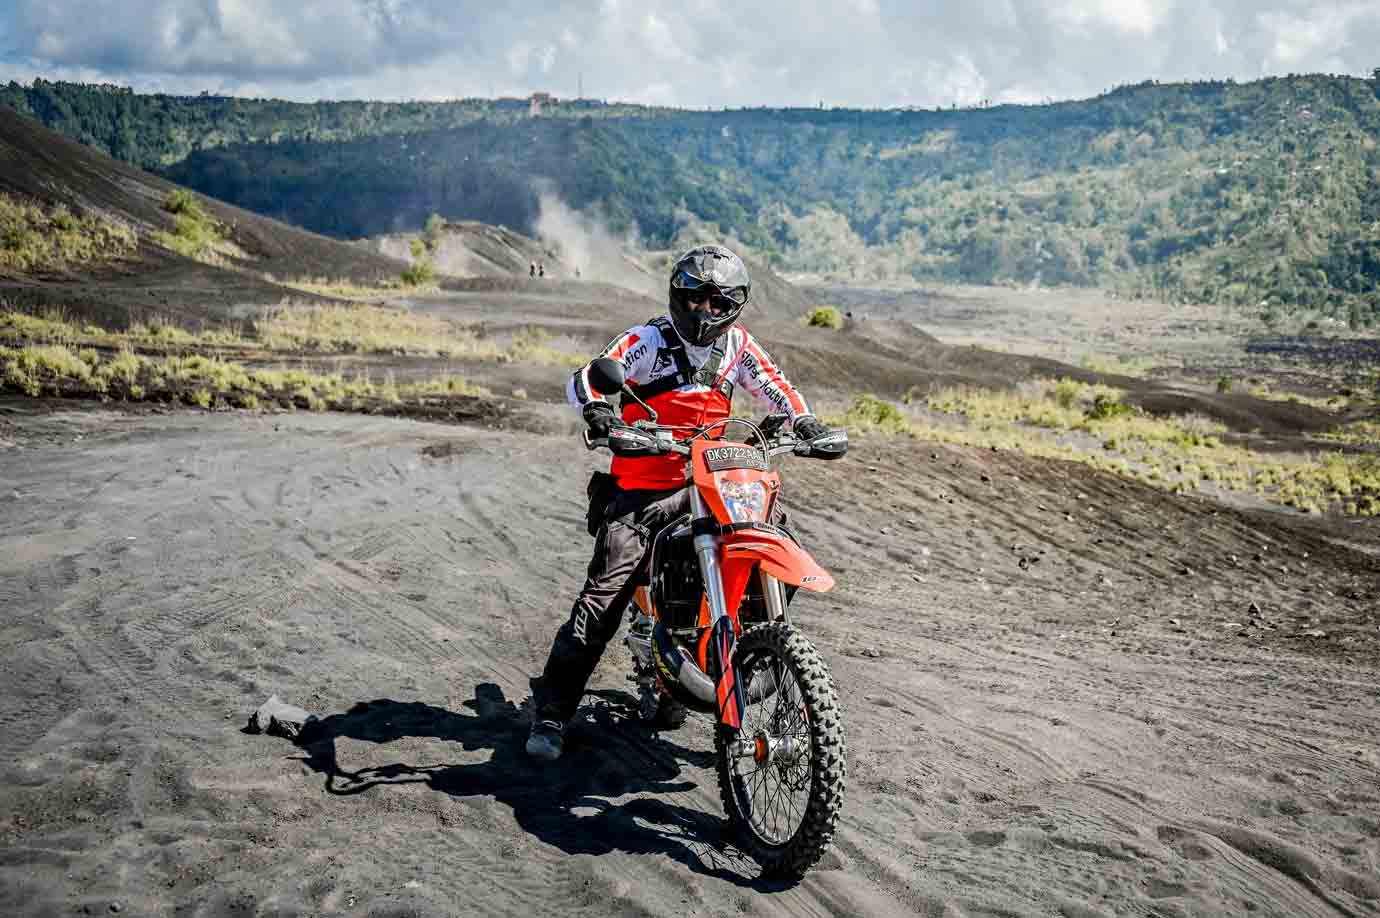 enduro dirt bike type